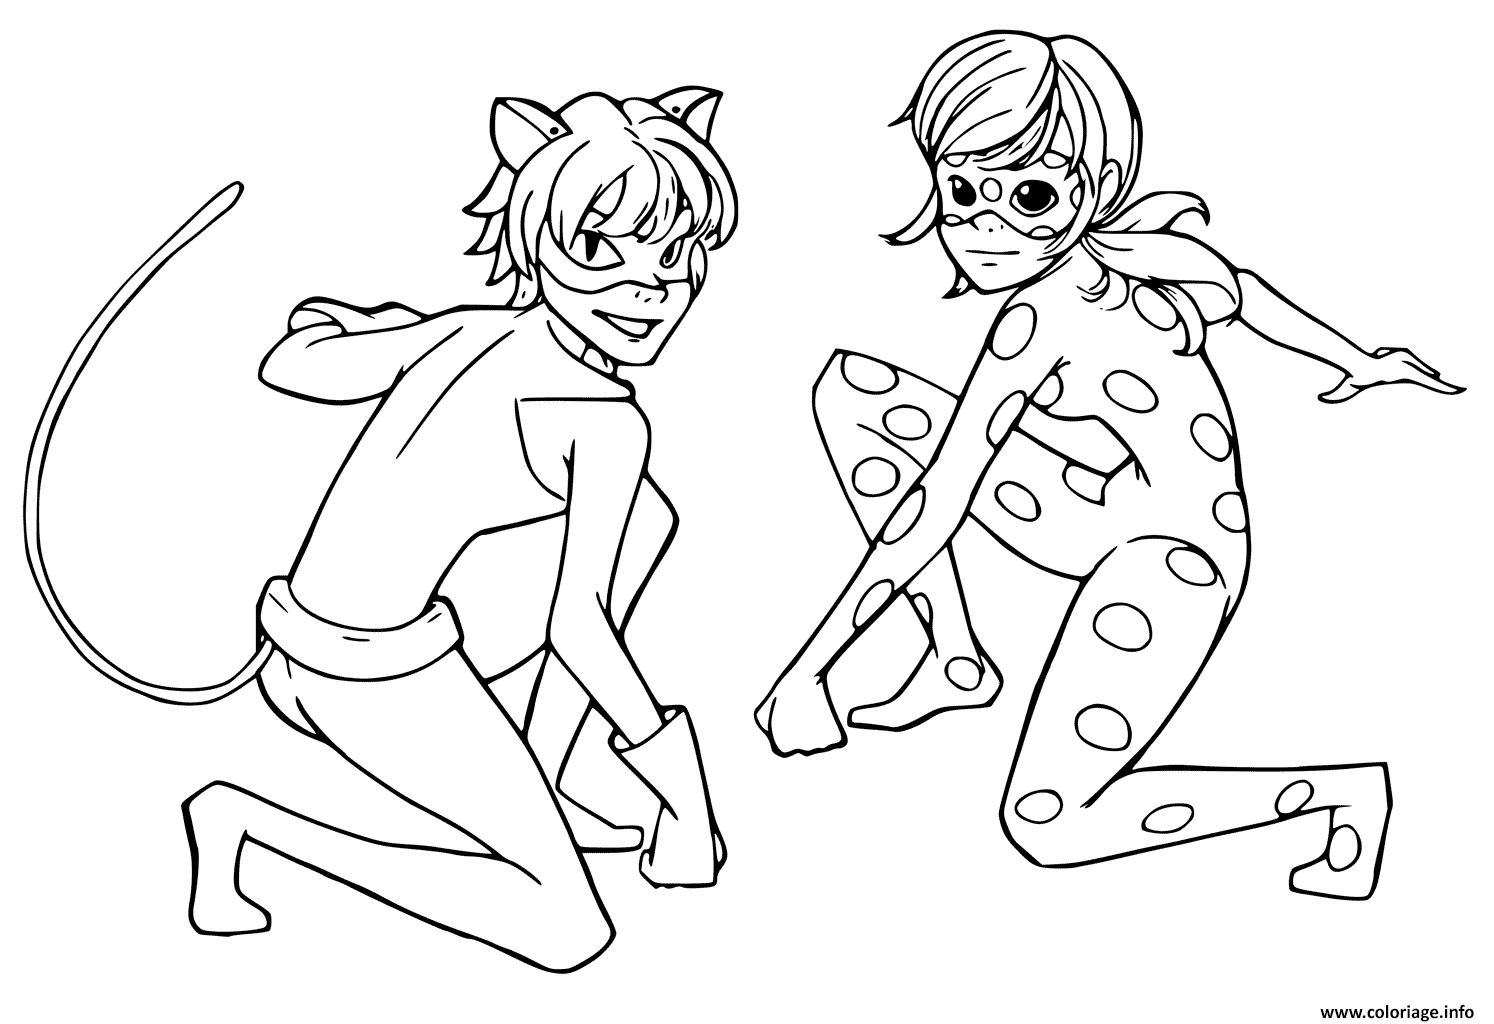 Coloriage Miraculous Tales Of Ladybug Chat Noir Enfants Jecolorie Com